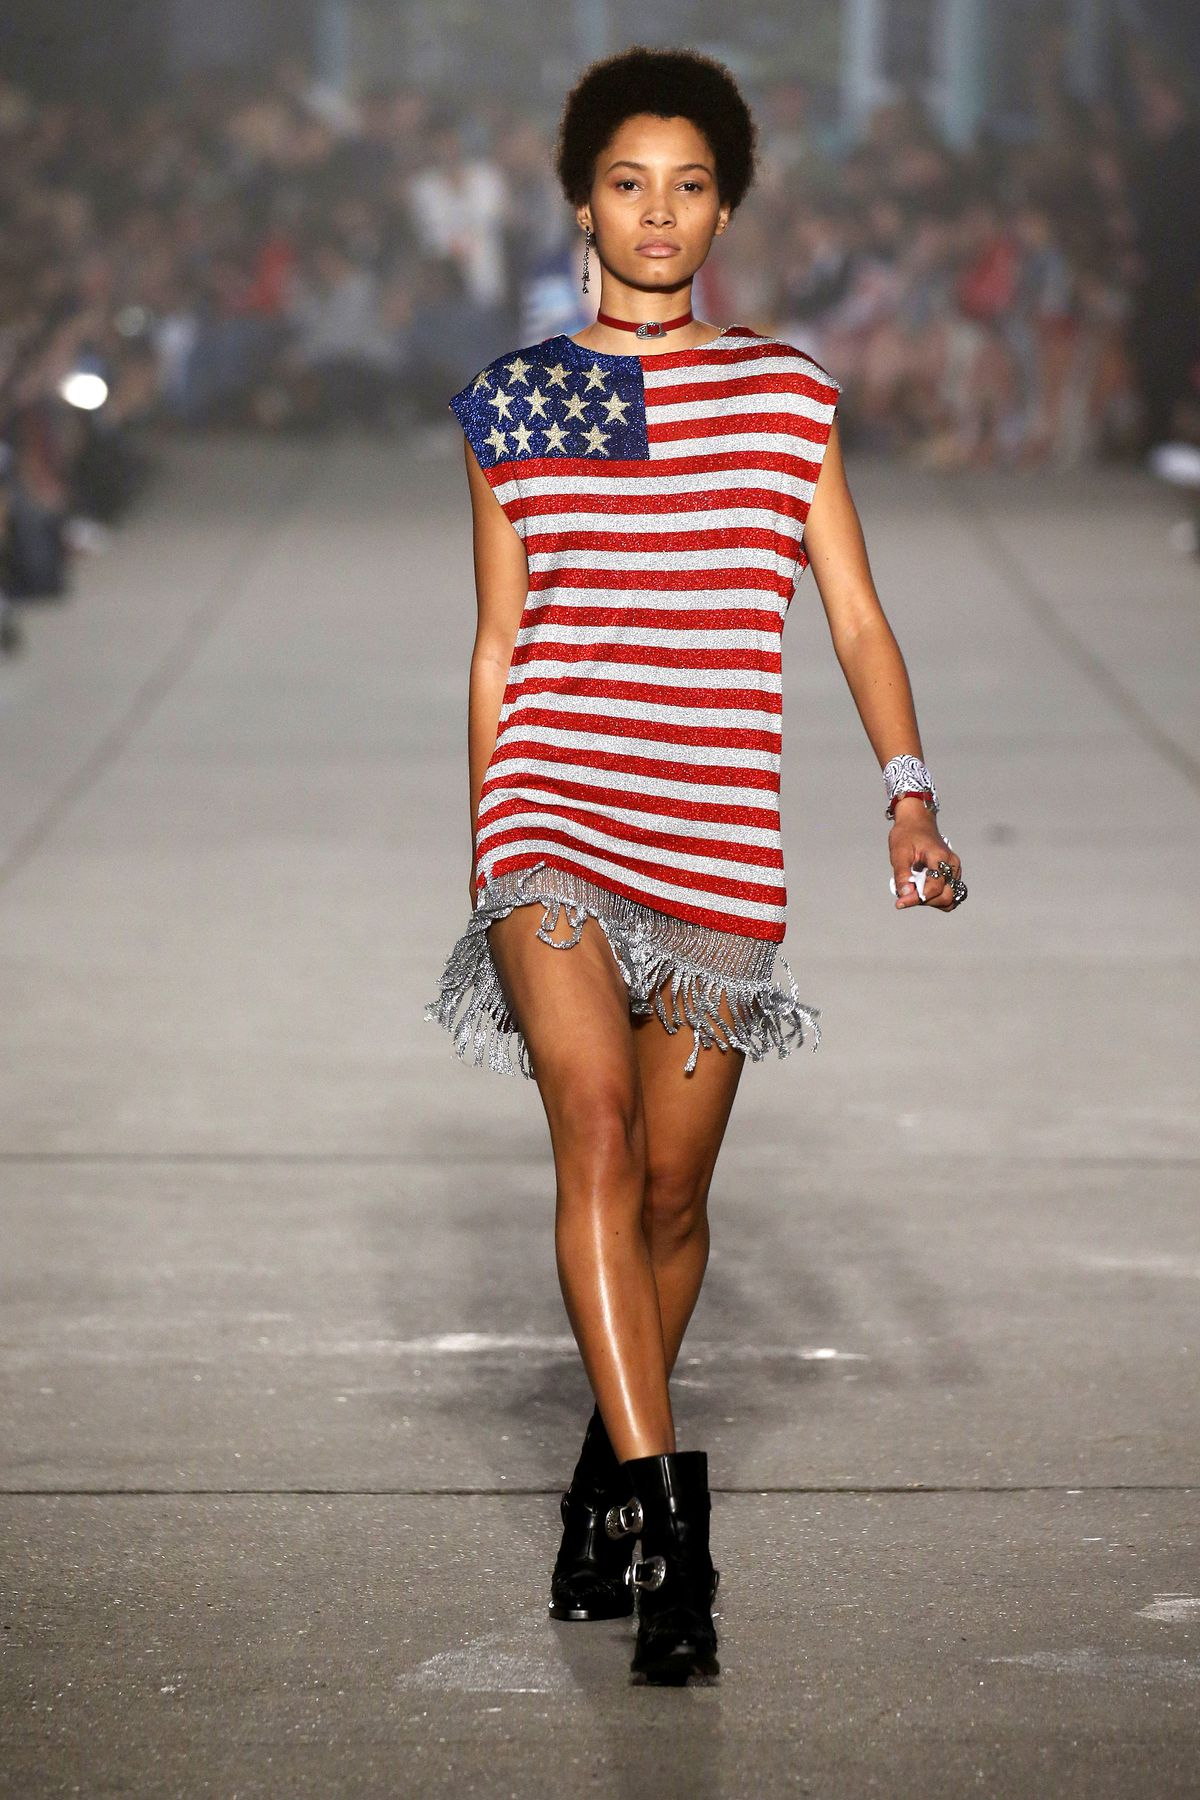 0ea2ce6e87d Your Stars and Stripes T-Shirt Technically Violates the Flag Code ...